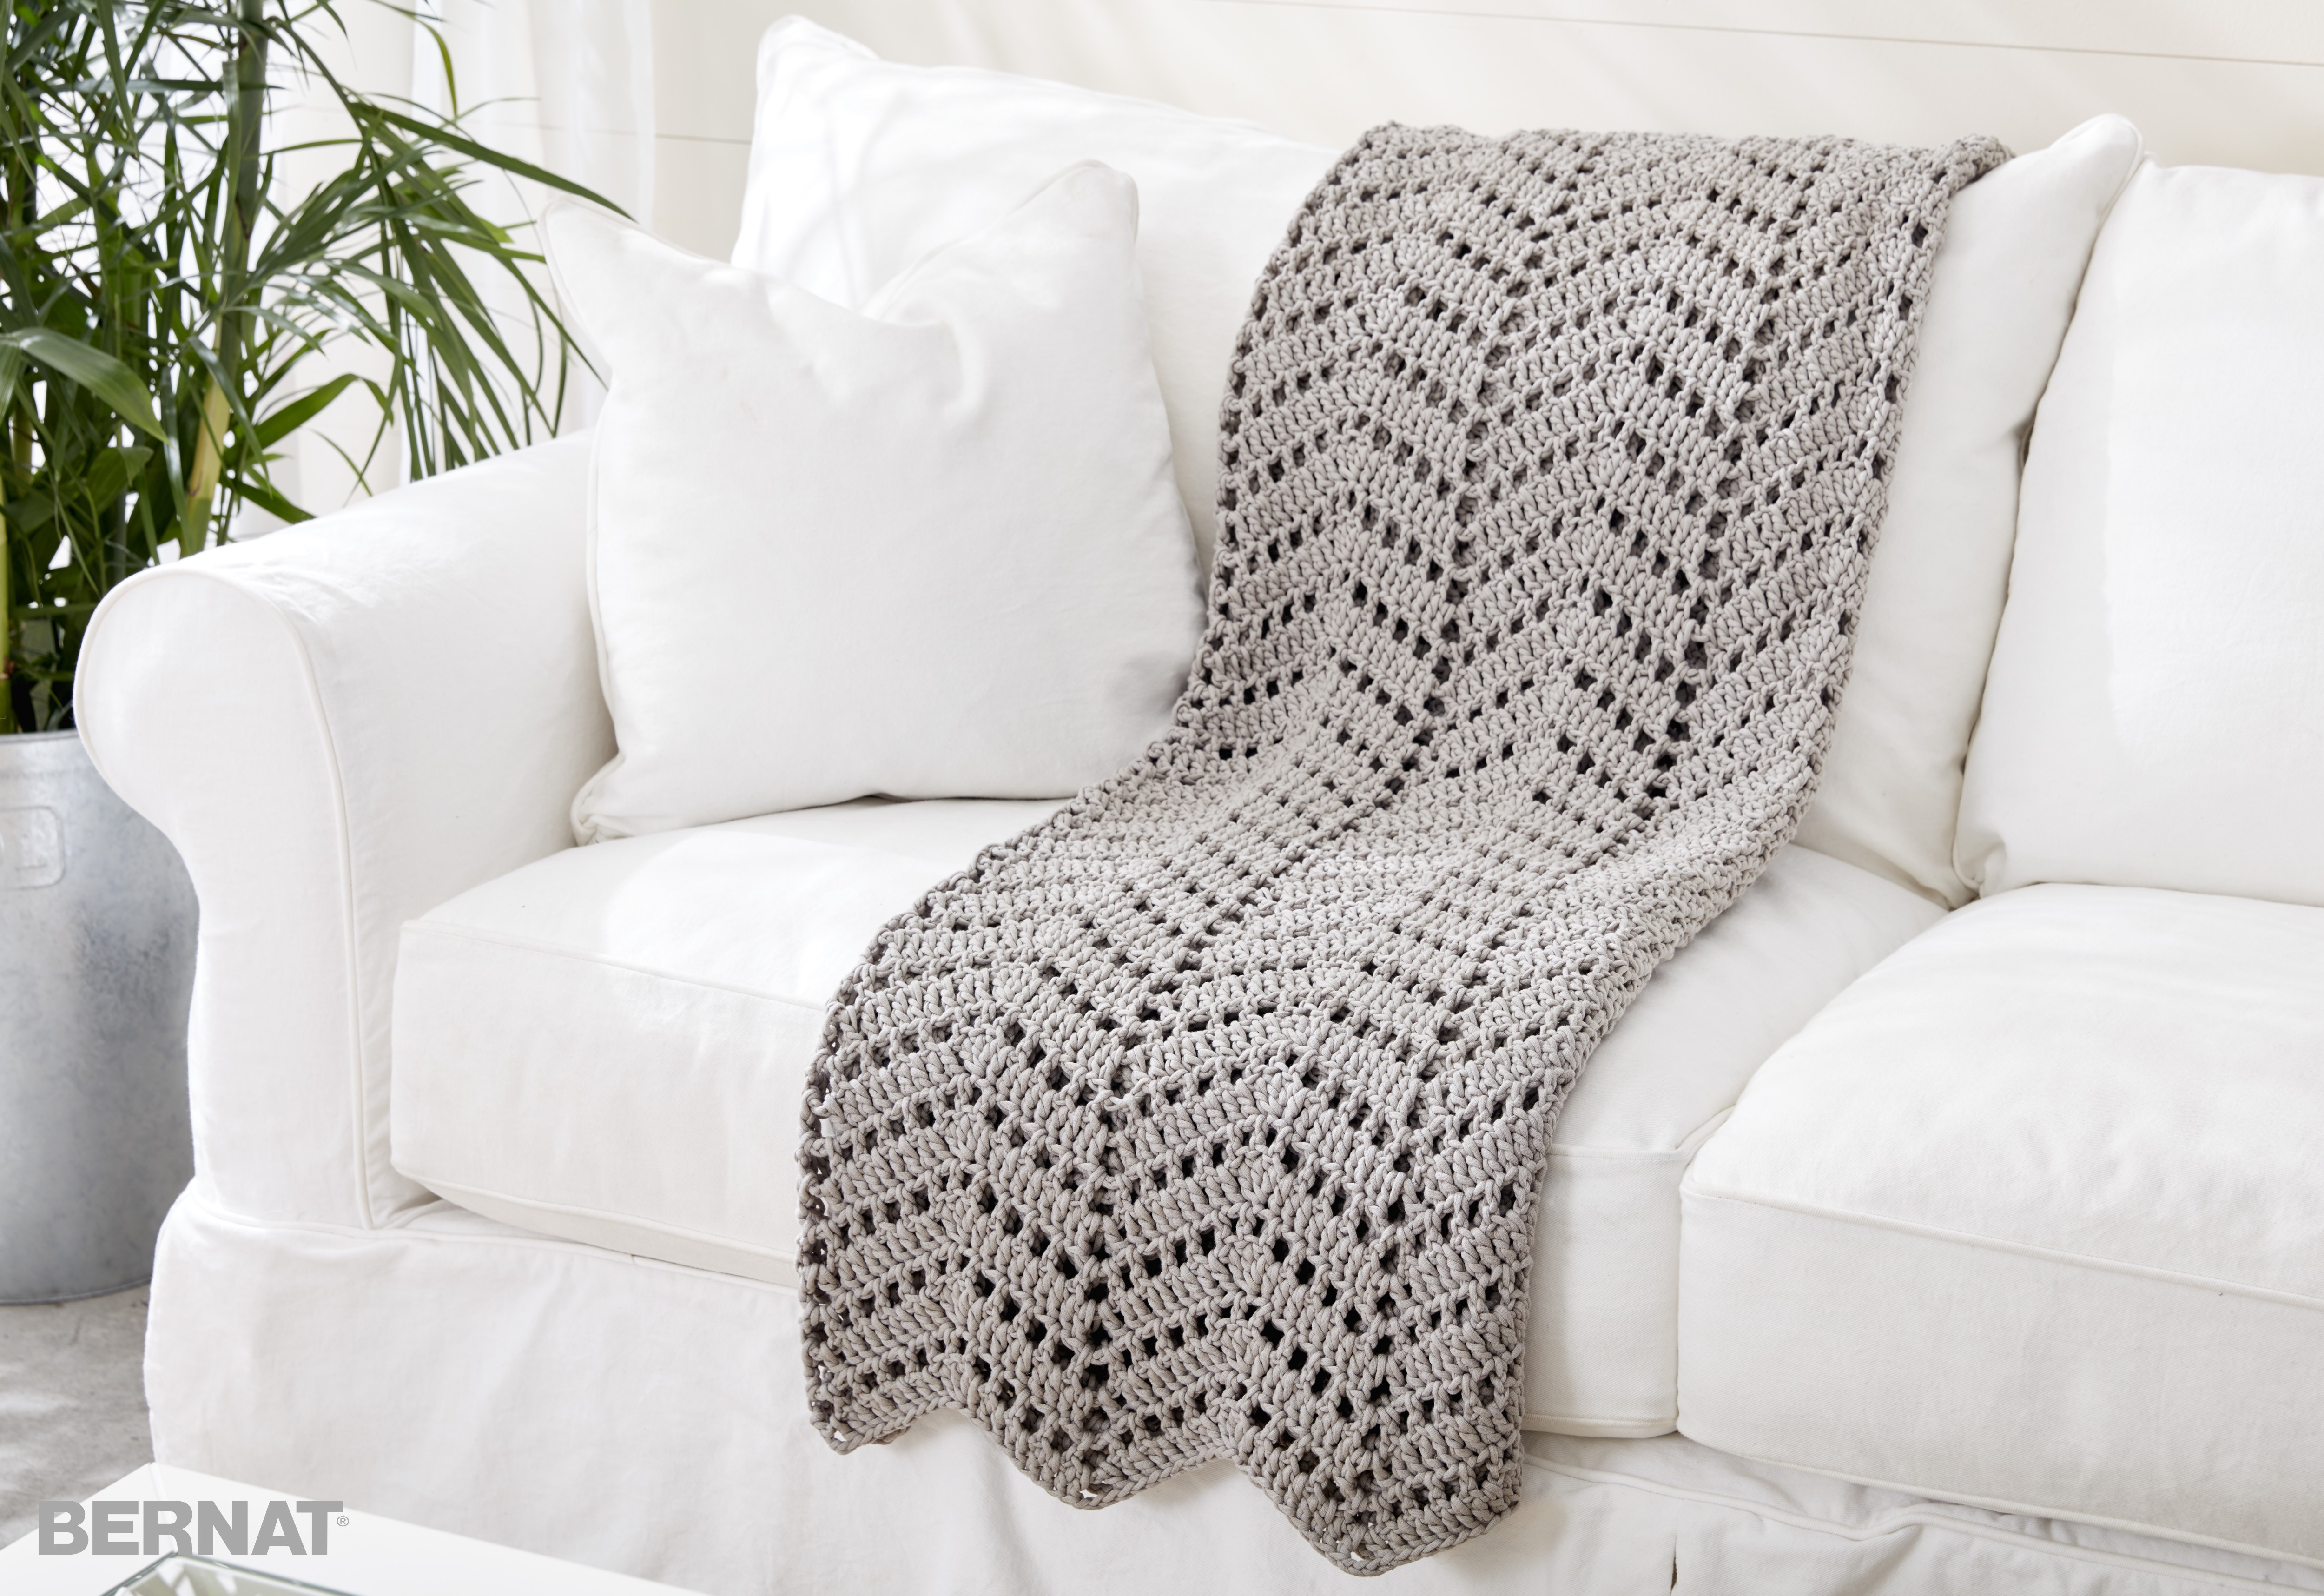 Crochet Throw Patterns Beautiful Bernat Ripples In the Sand Crochet Afghan Crochet Pattern Of Brilliant 40 Photos Crochet Throw Patterns